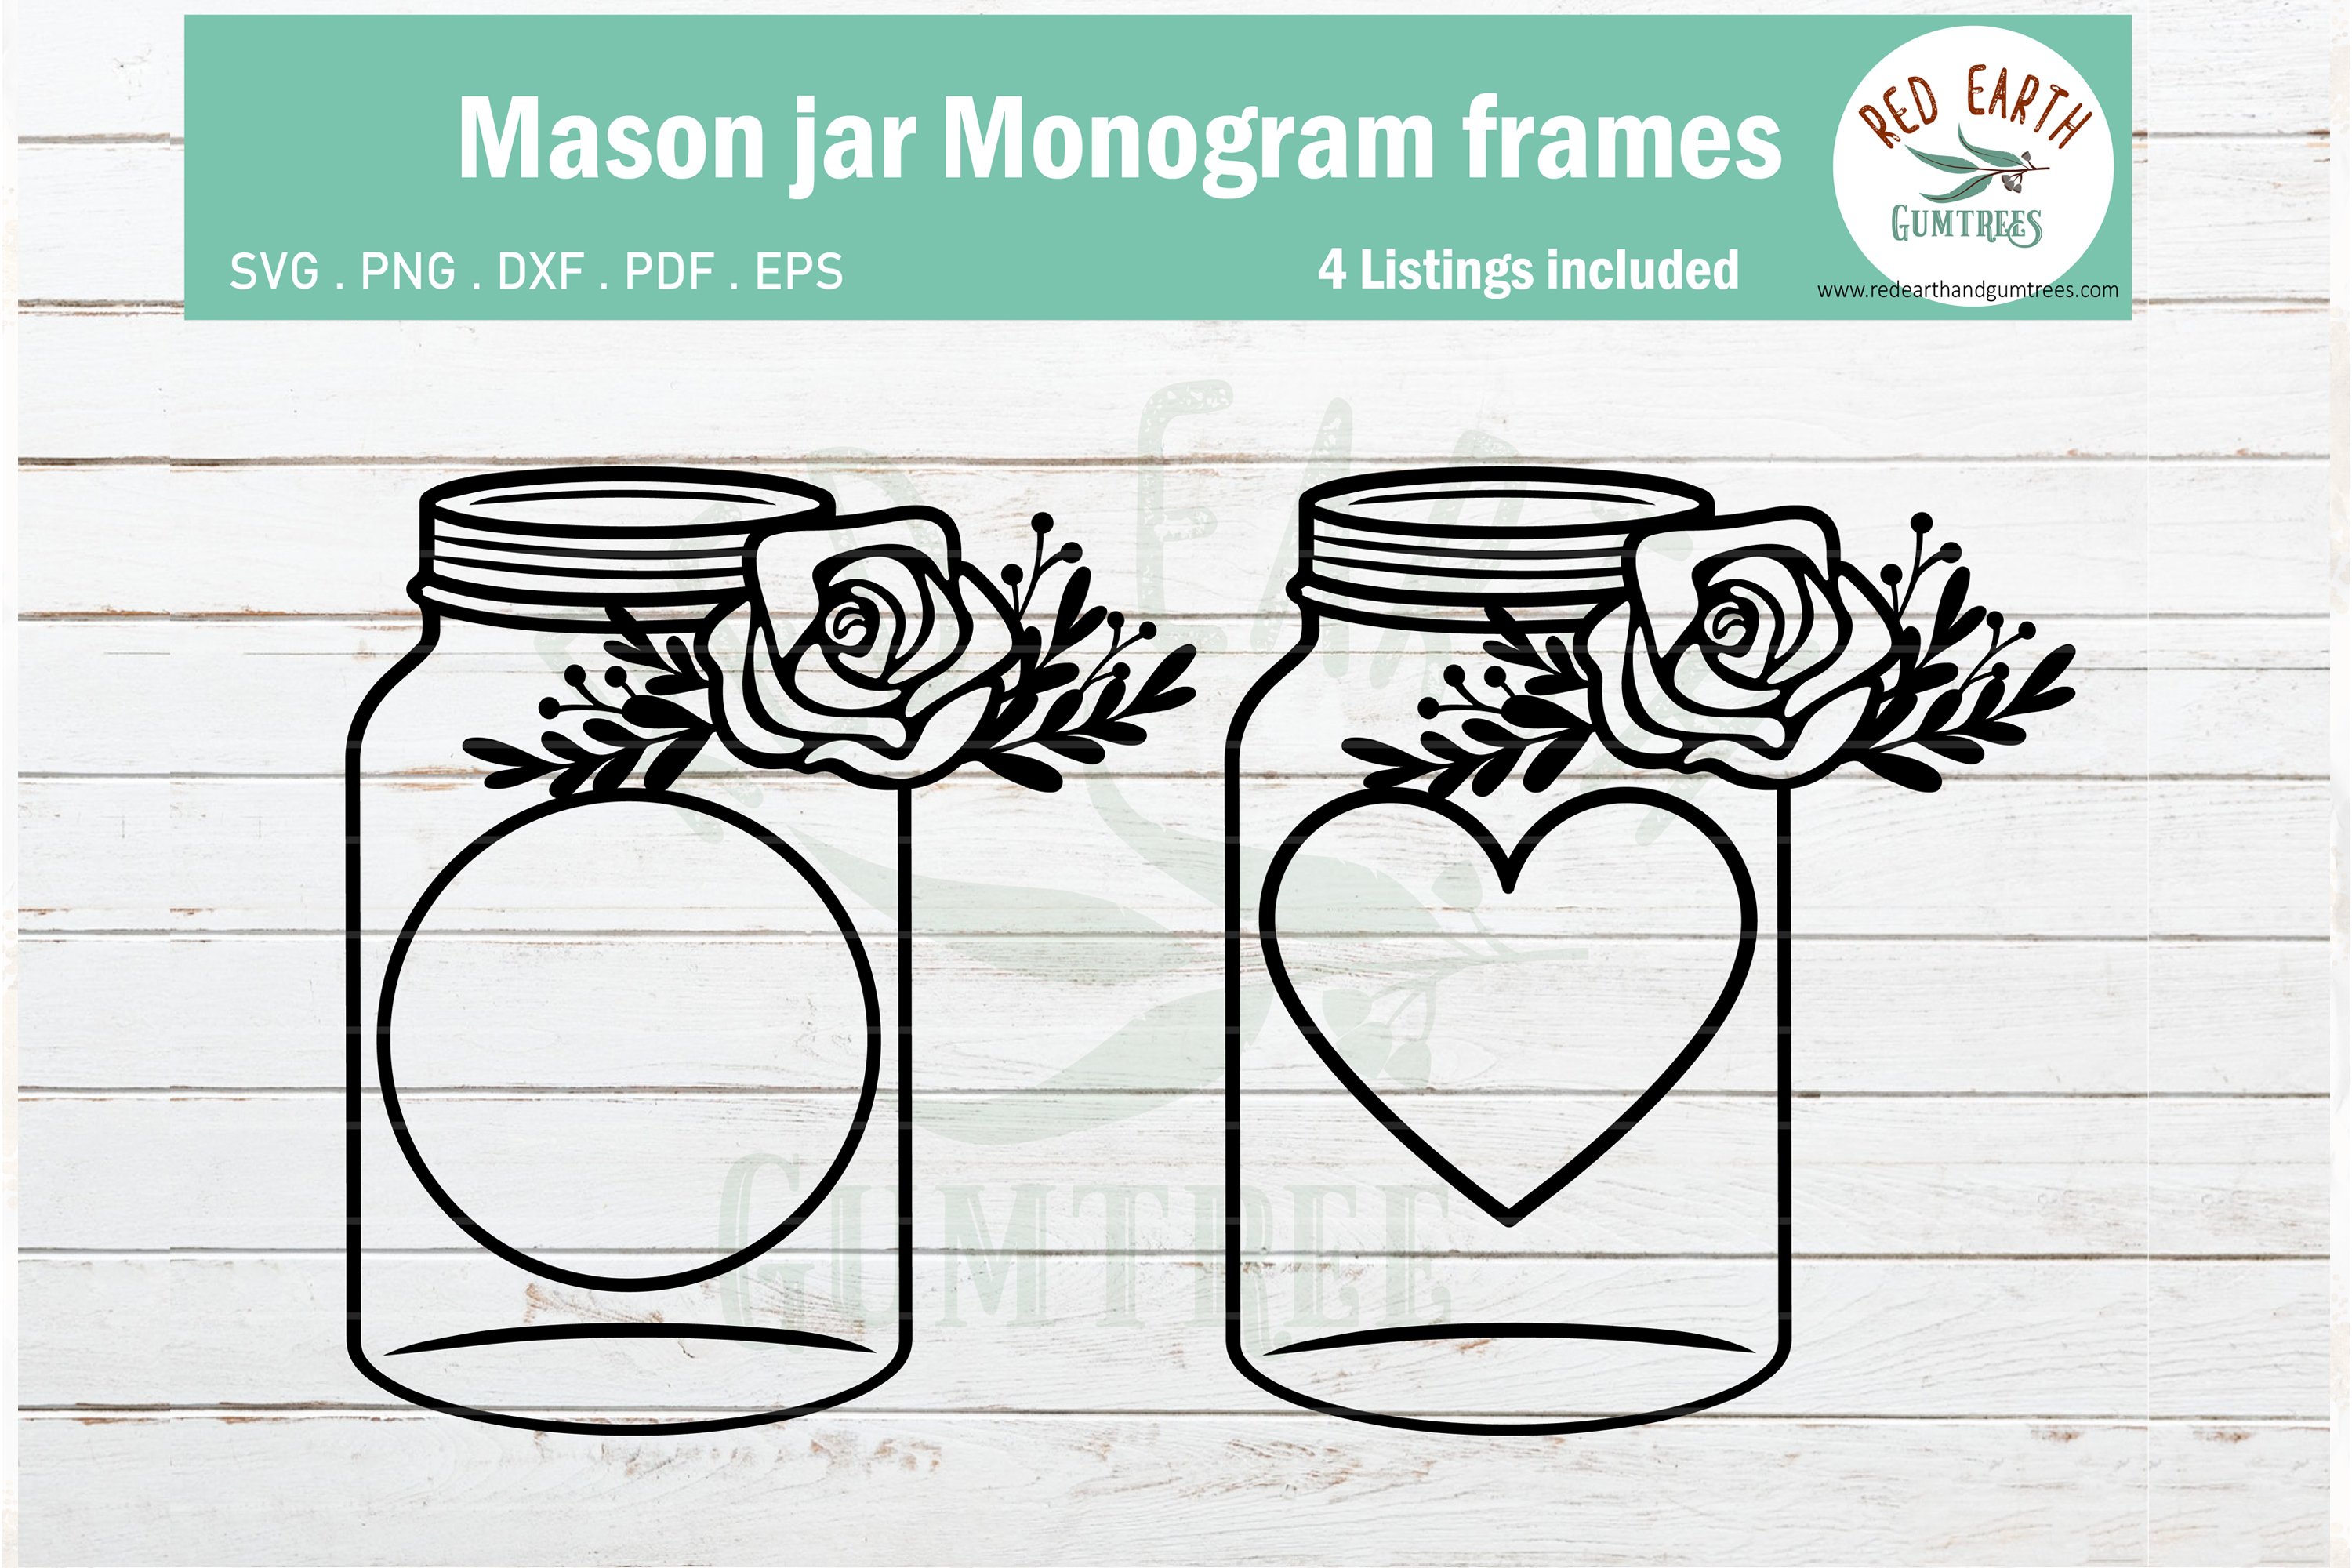 Floral mason jar, wedding mason jar monogram SVG,PNG,DXF,EPS example image 2